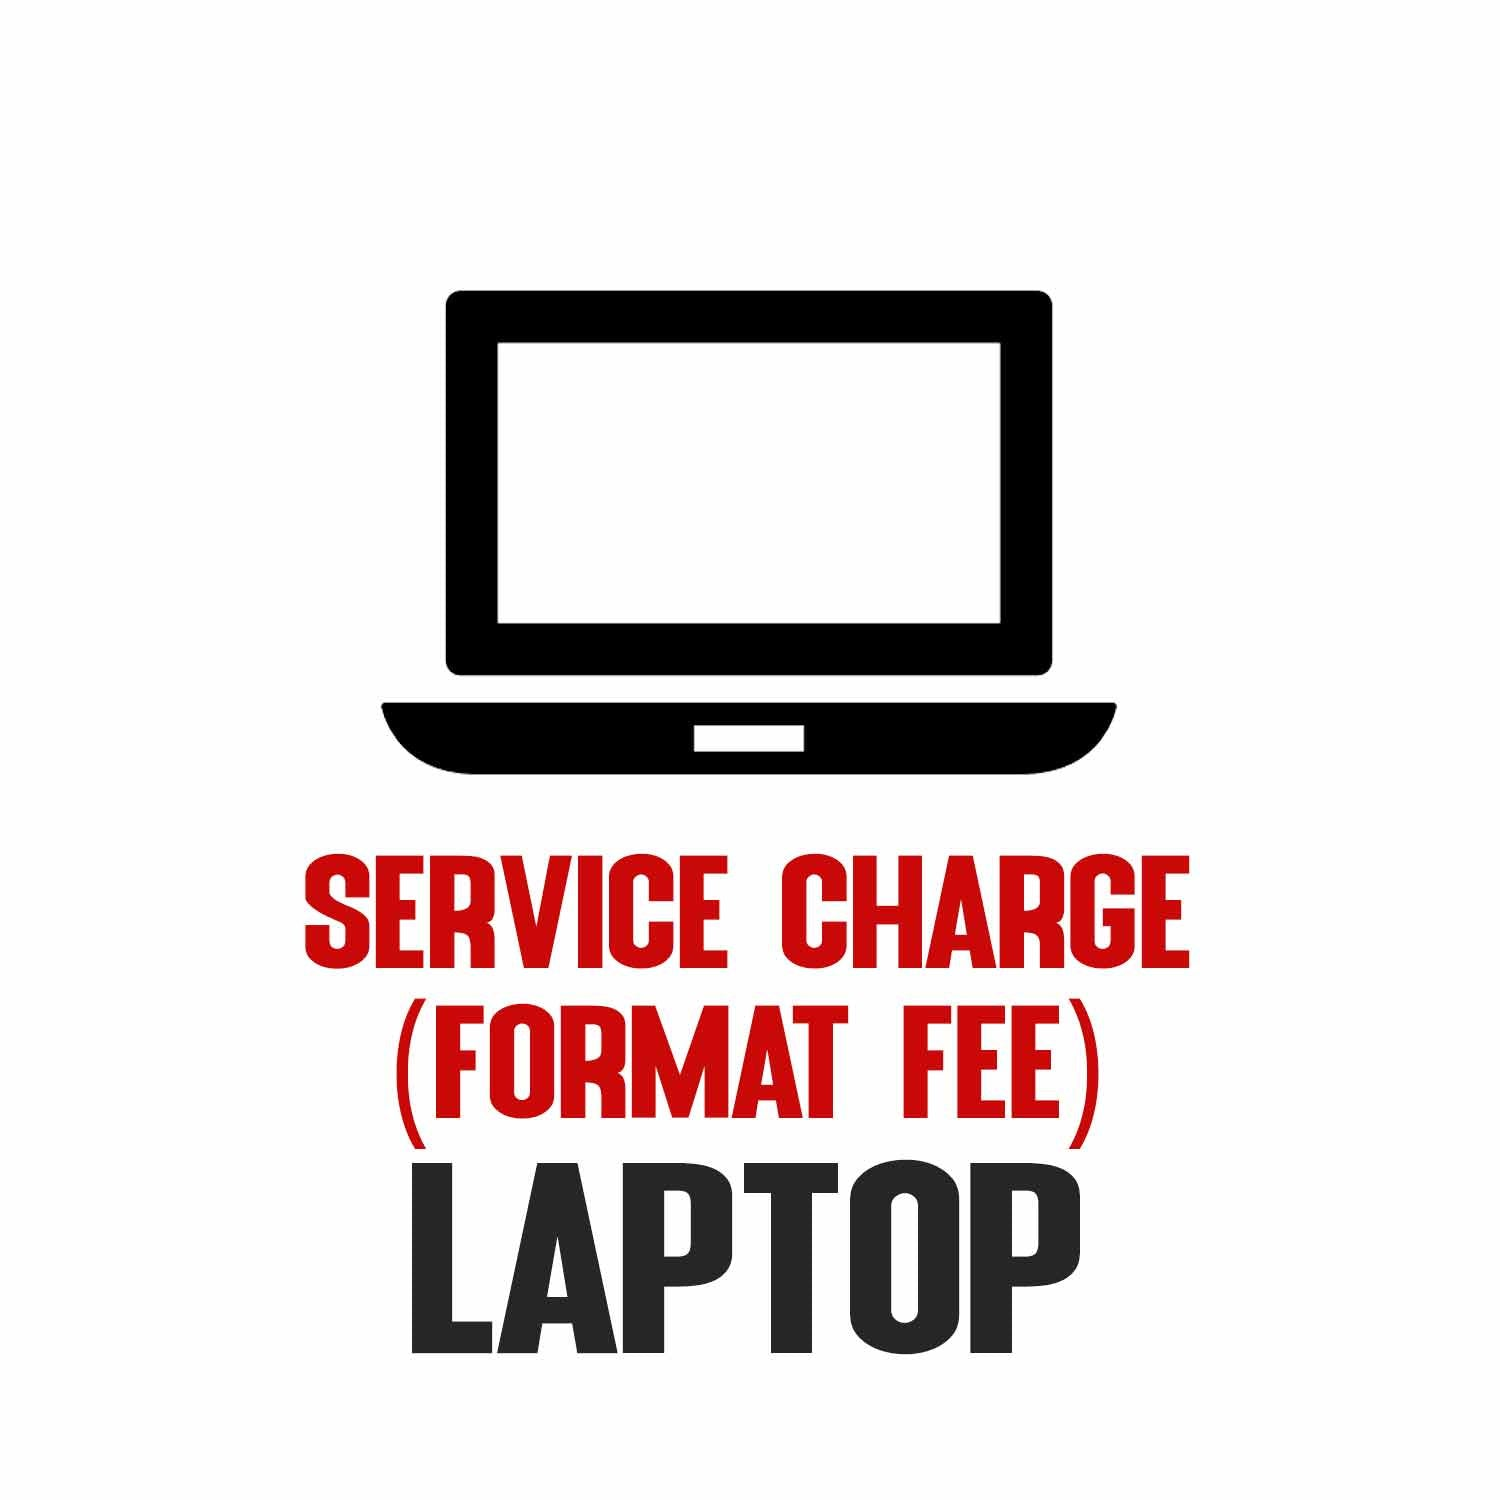 Service Charge (Format fee) Laptop